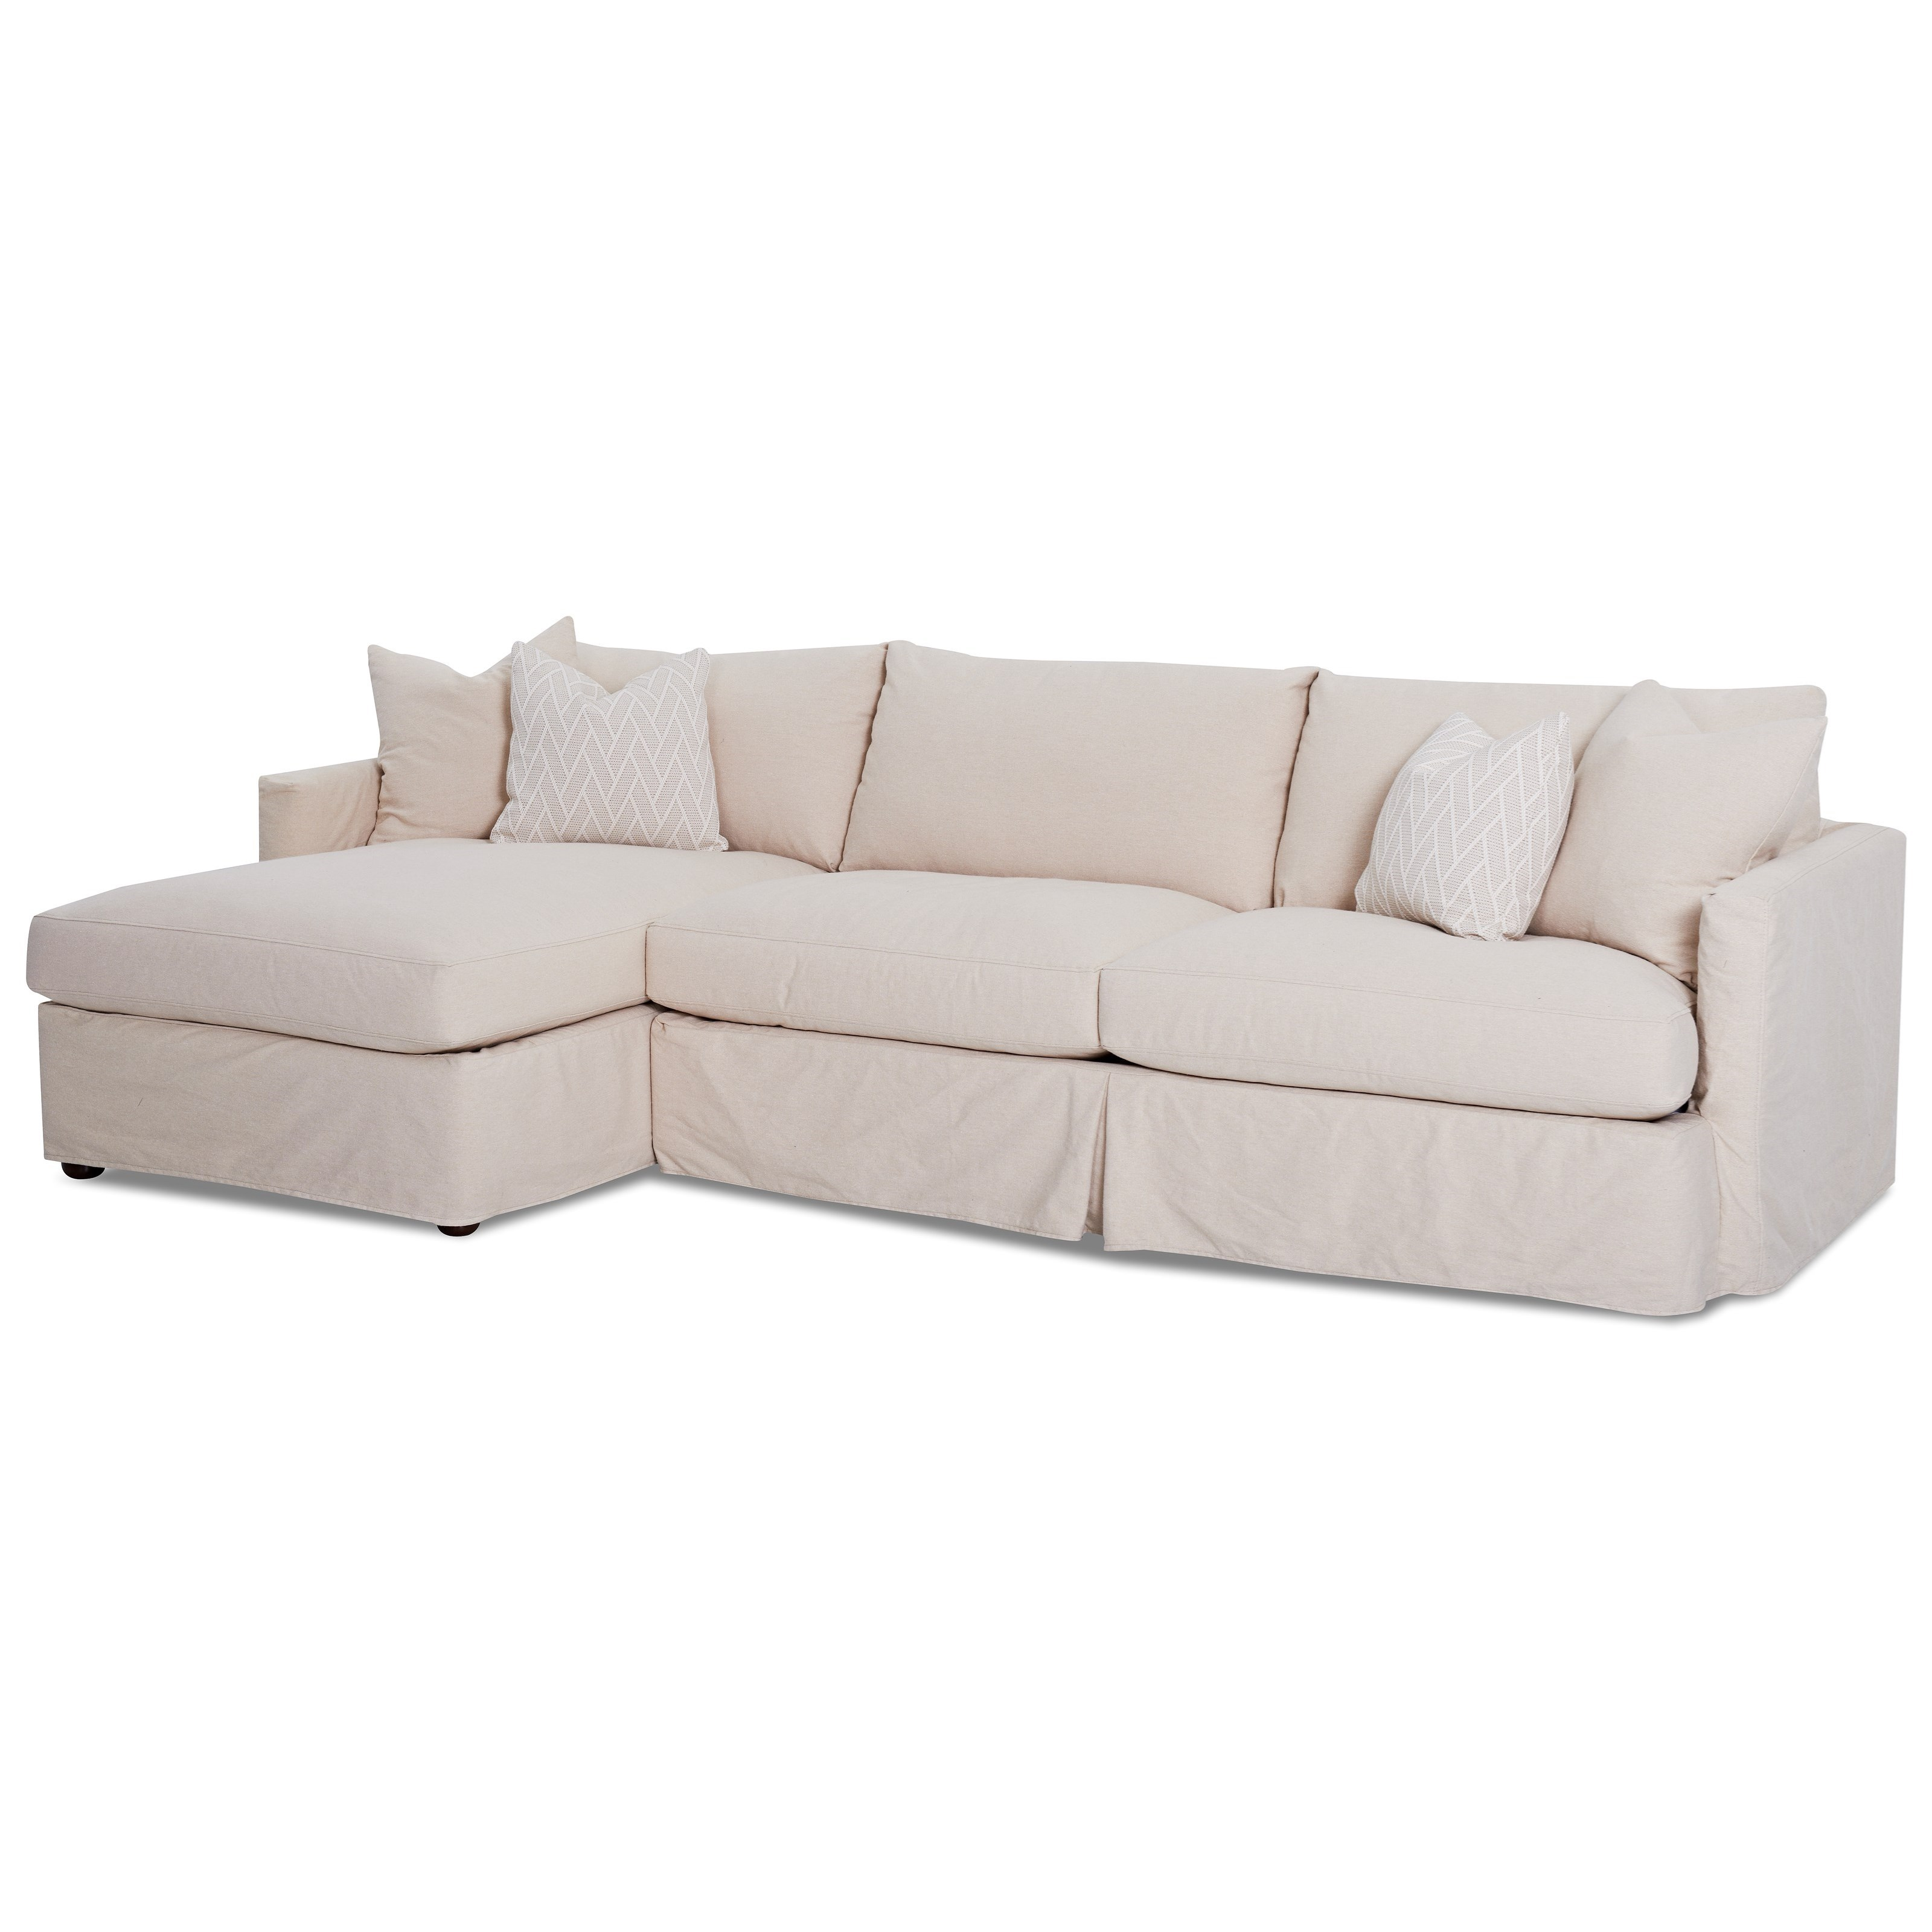 Klaussner Leisure 2 Pc Sectional Sofa with Slipcover and